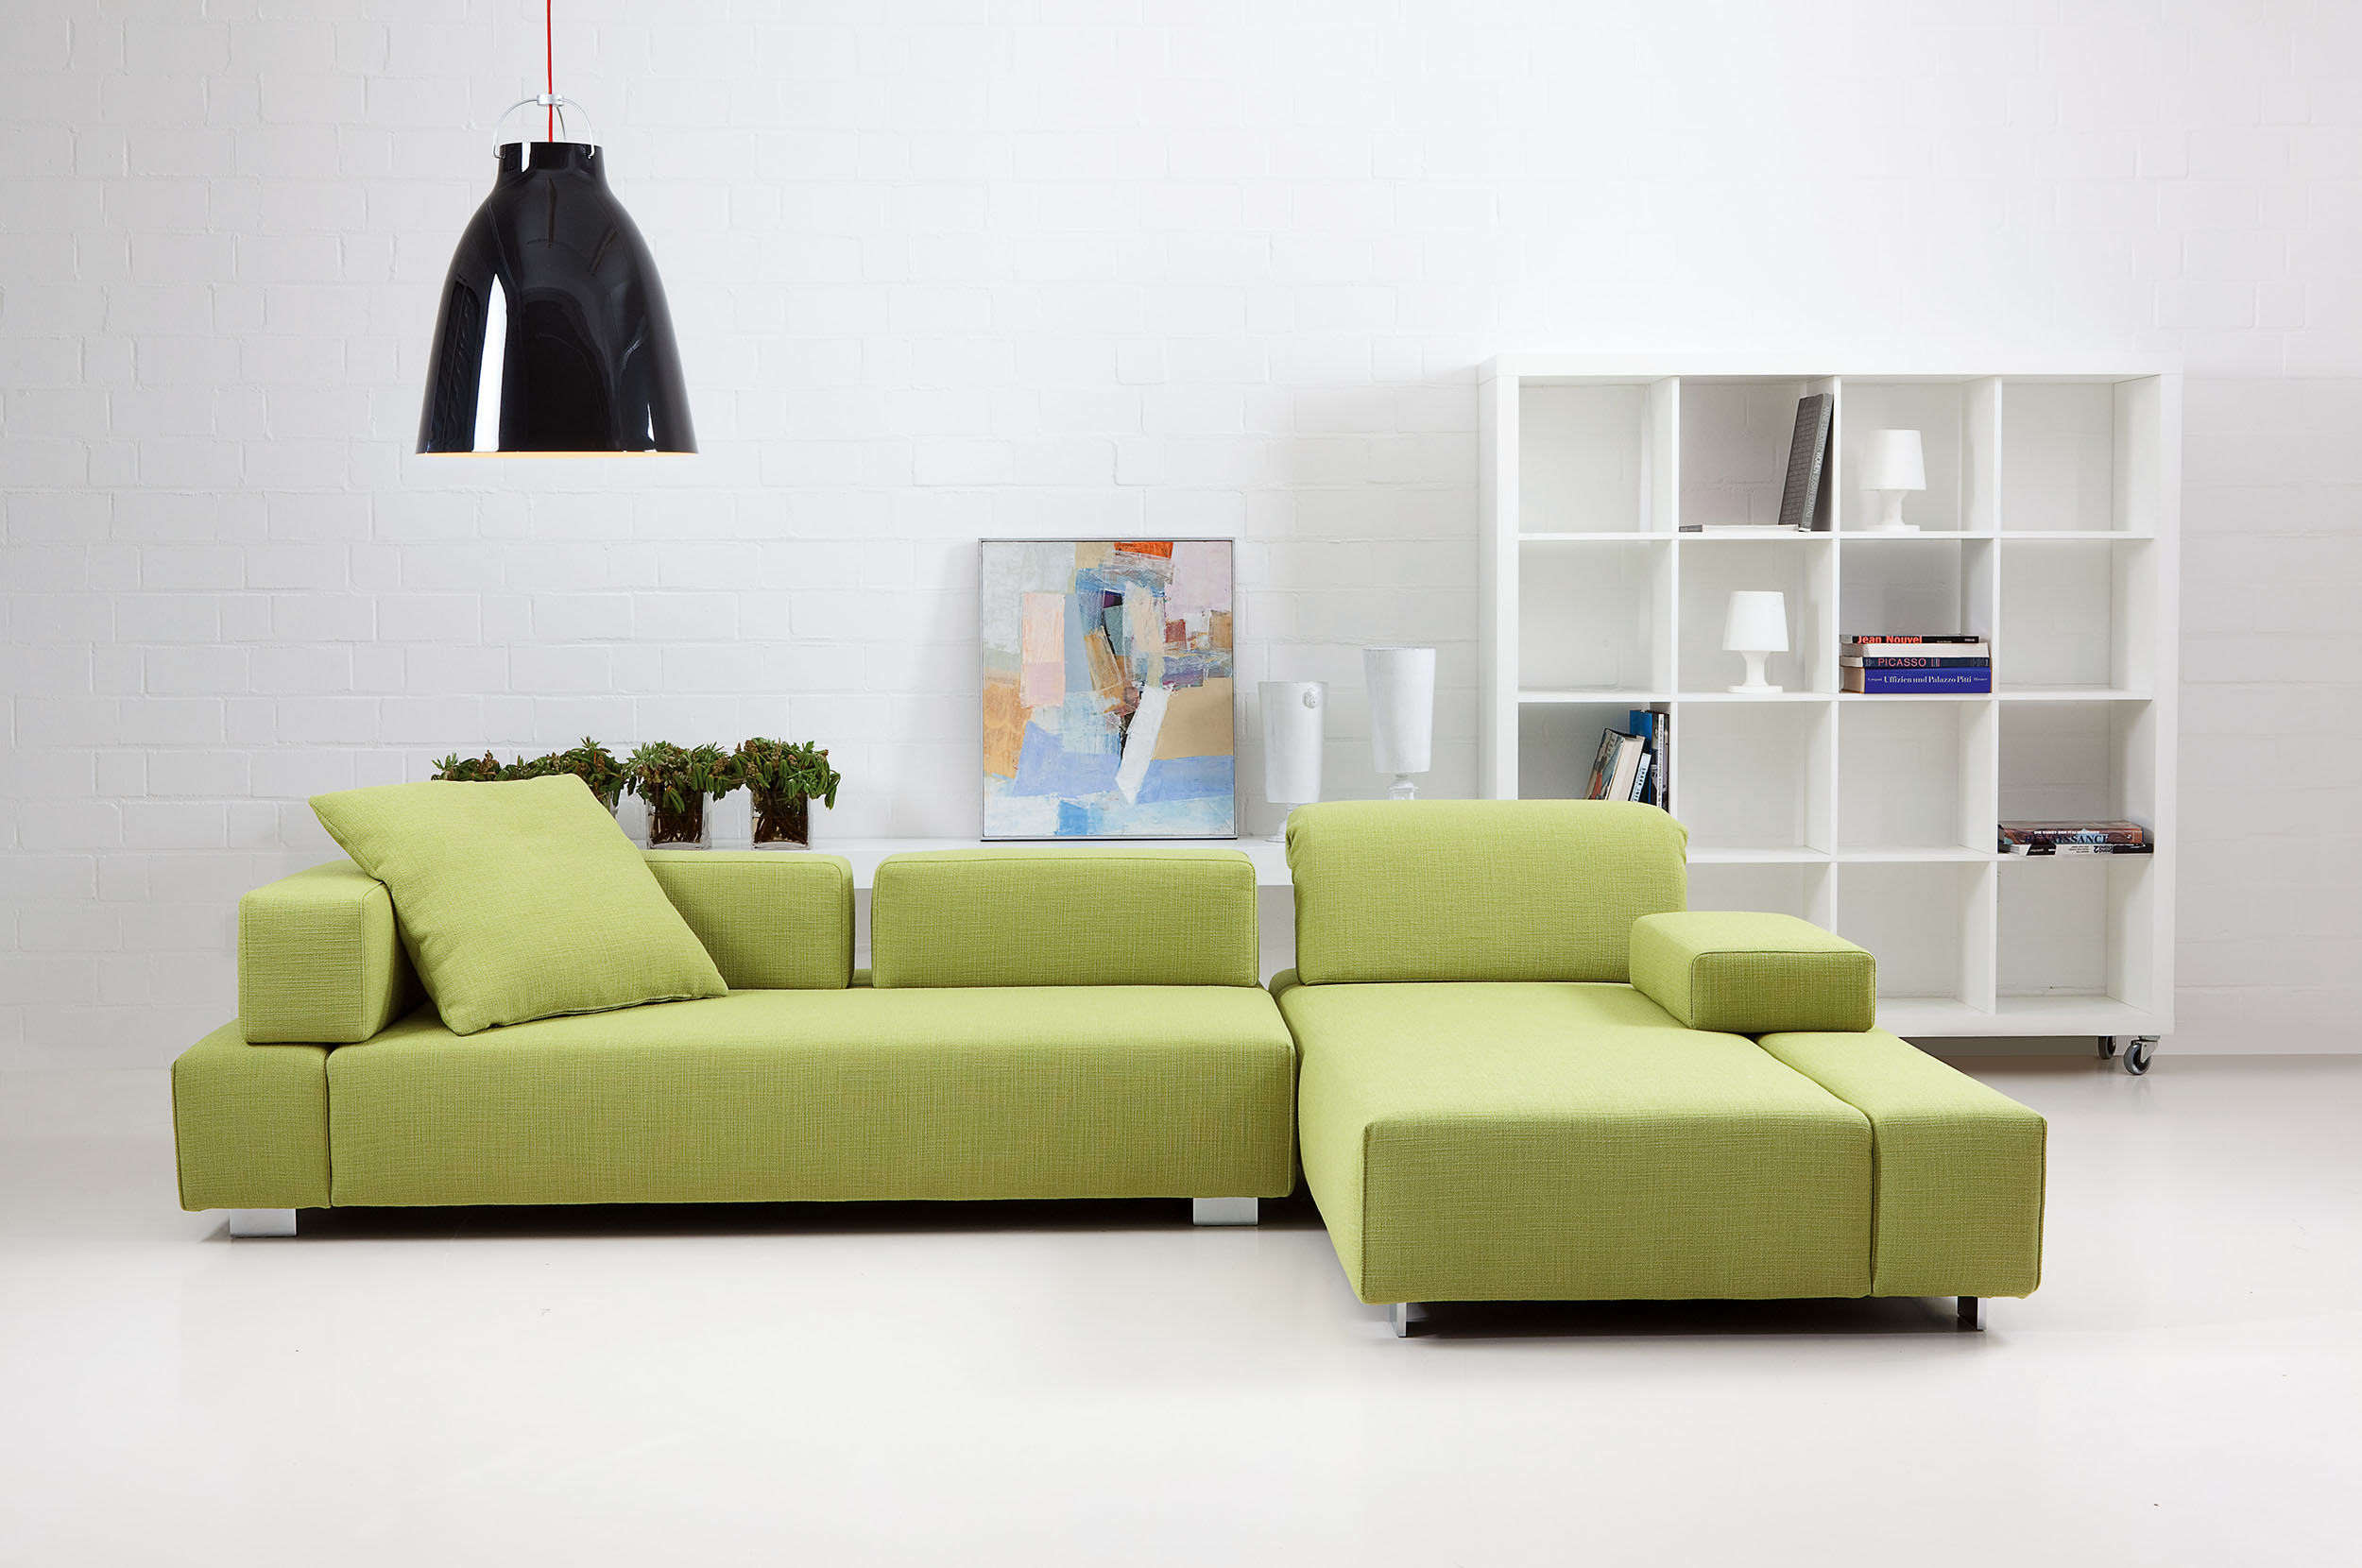 fields_Sofas_gruen_0975.jpg